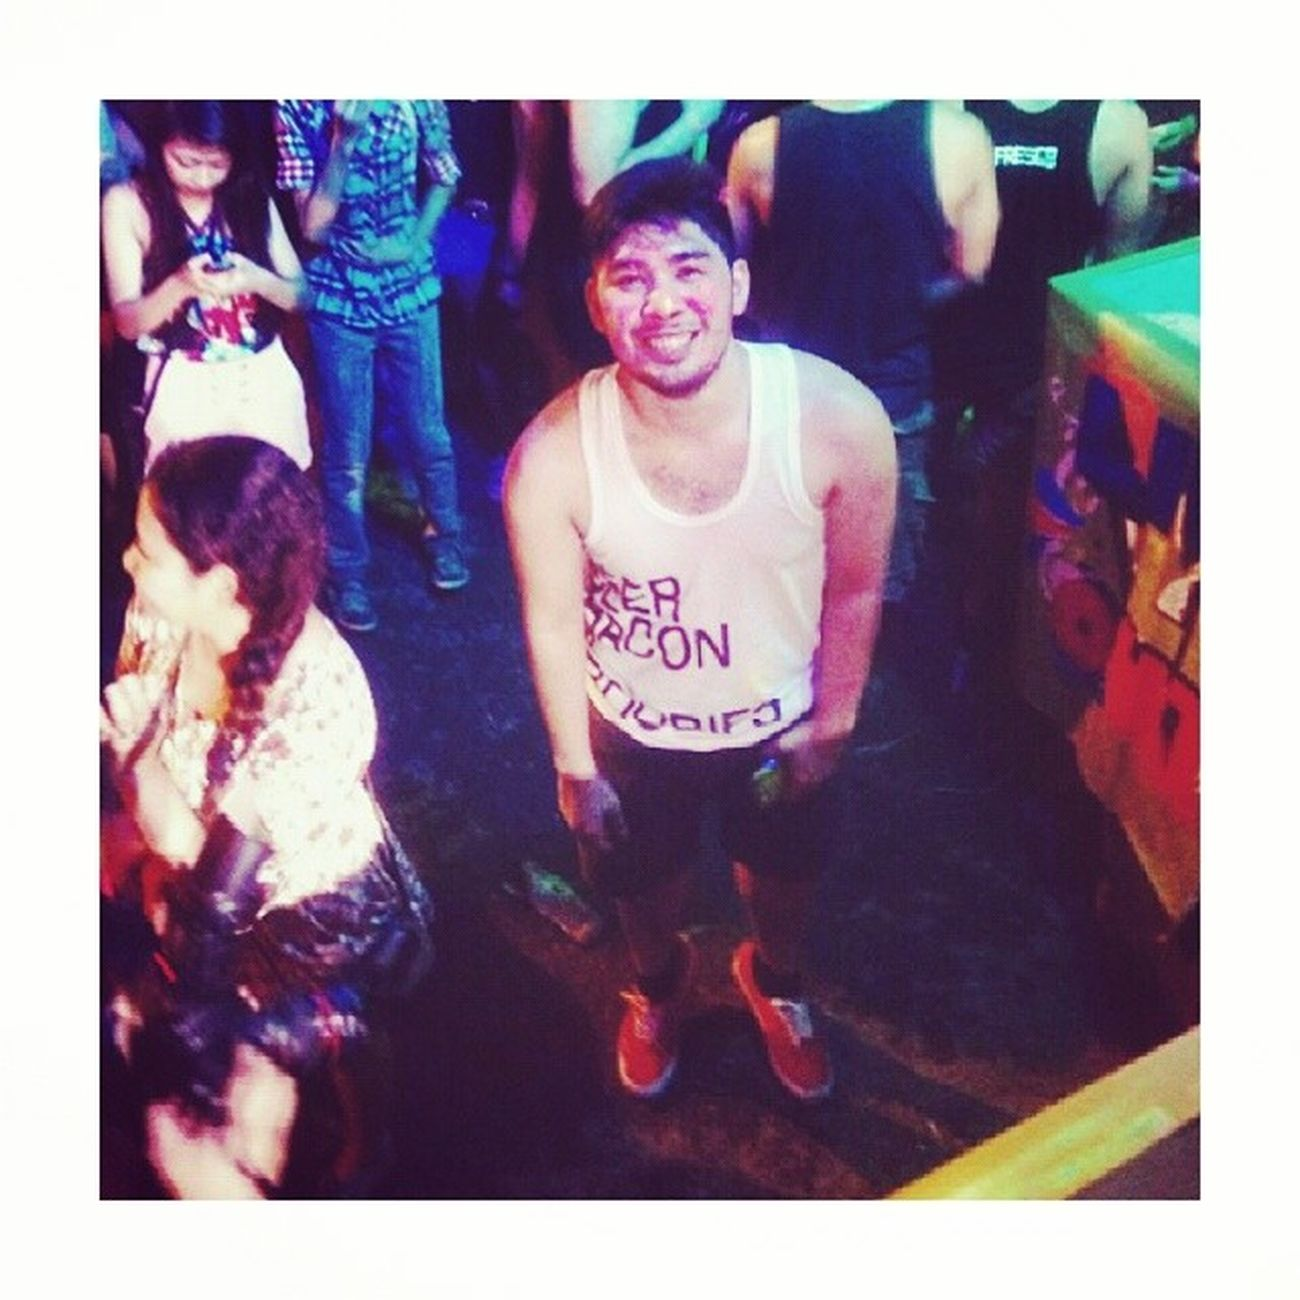 Beer, Bacon, and Boobies! Streetparty2014 Selfie Paints (c) @mikaenchanted